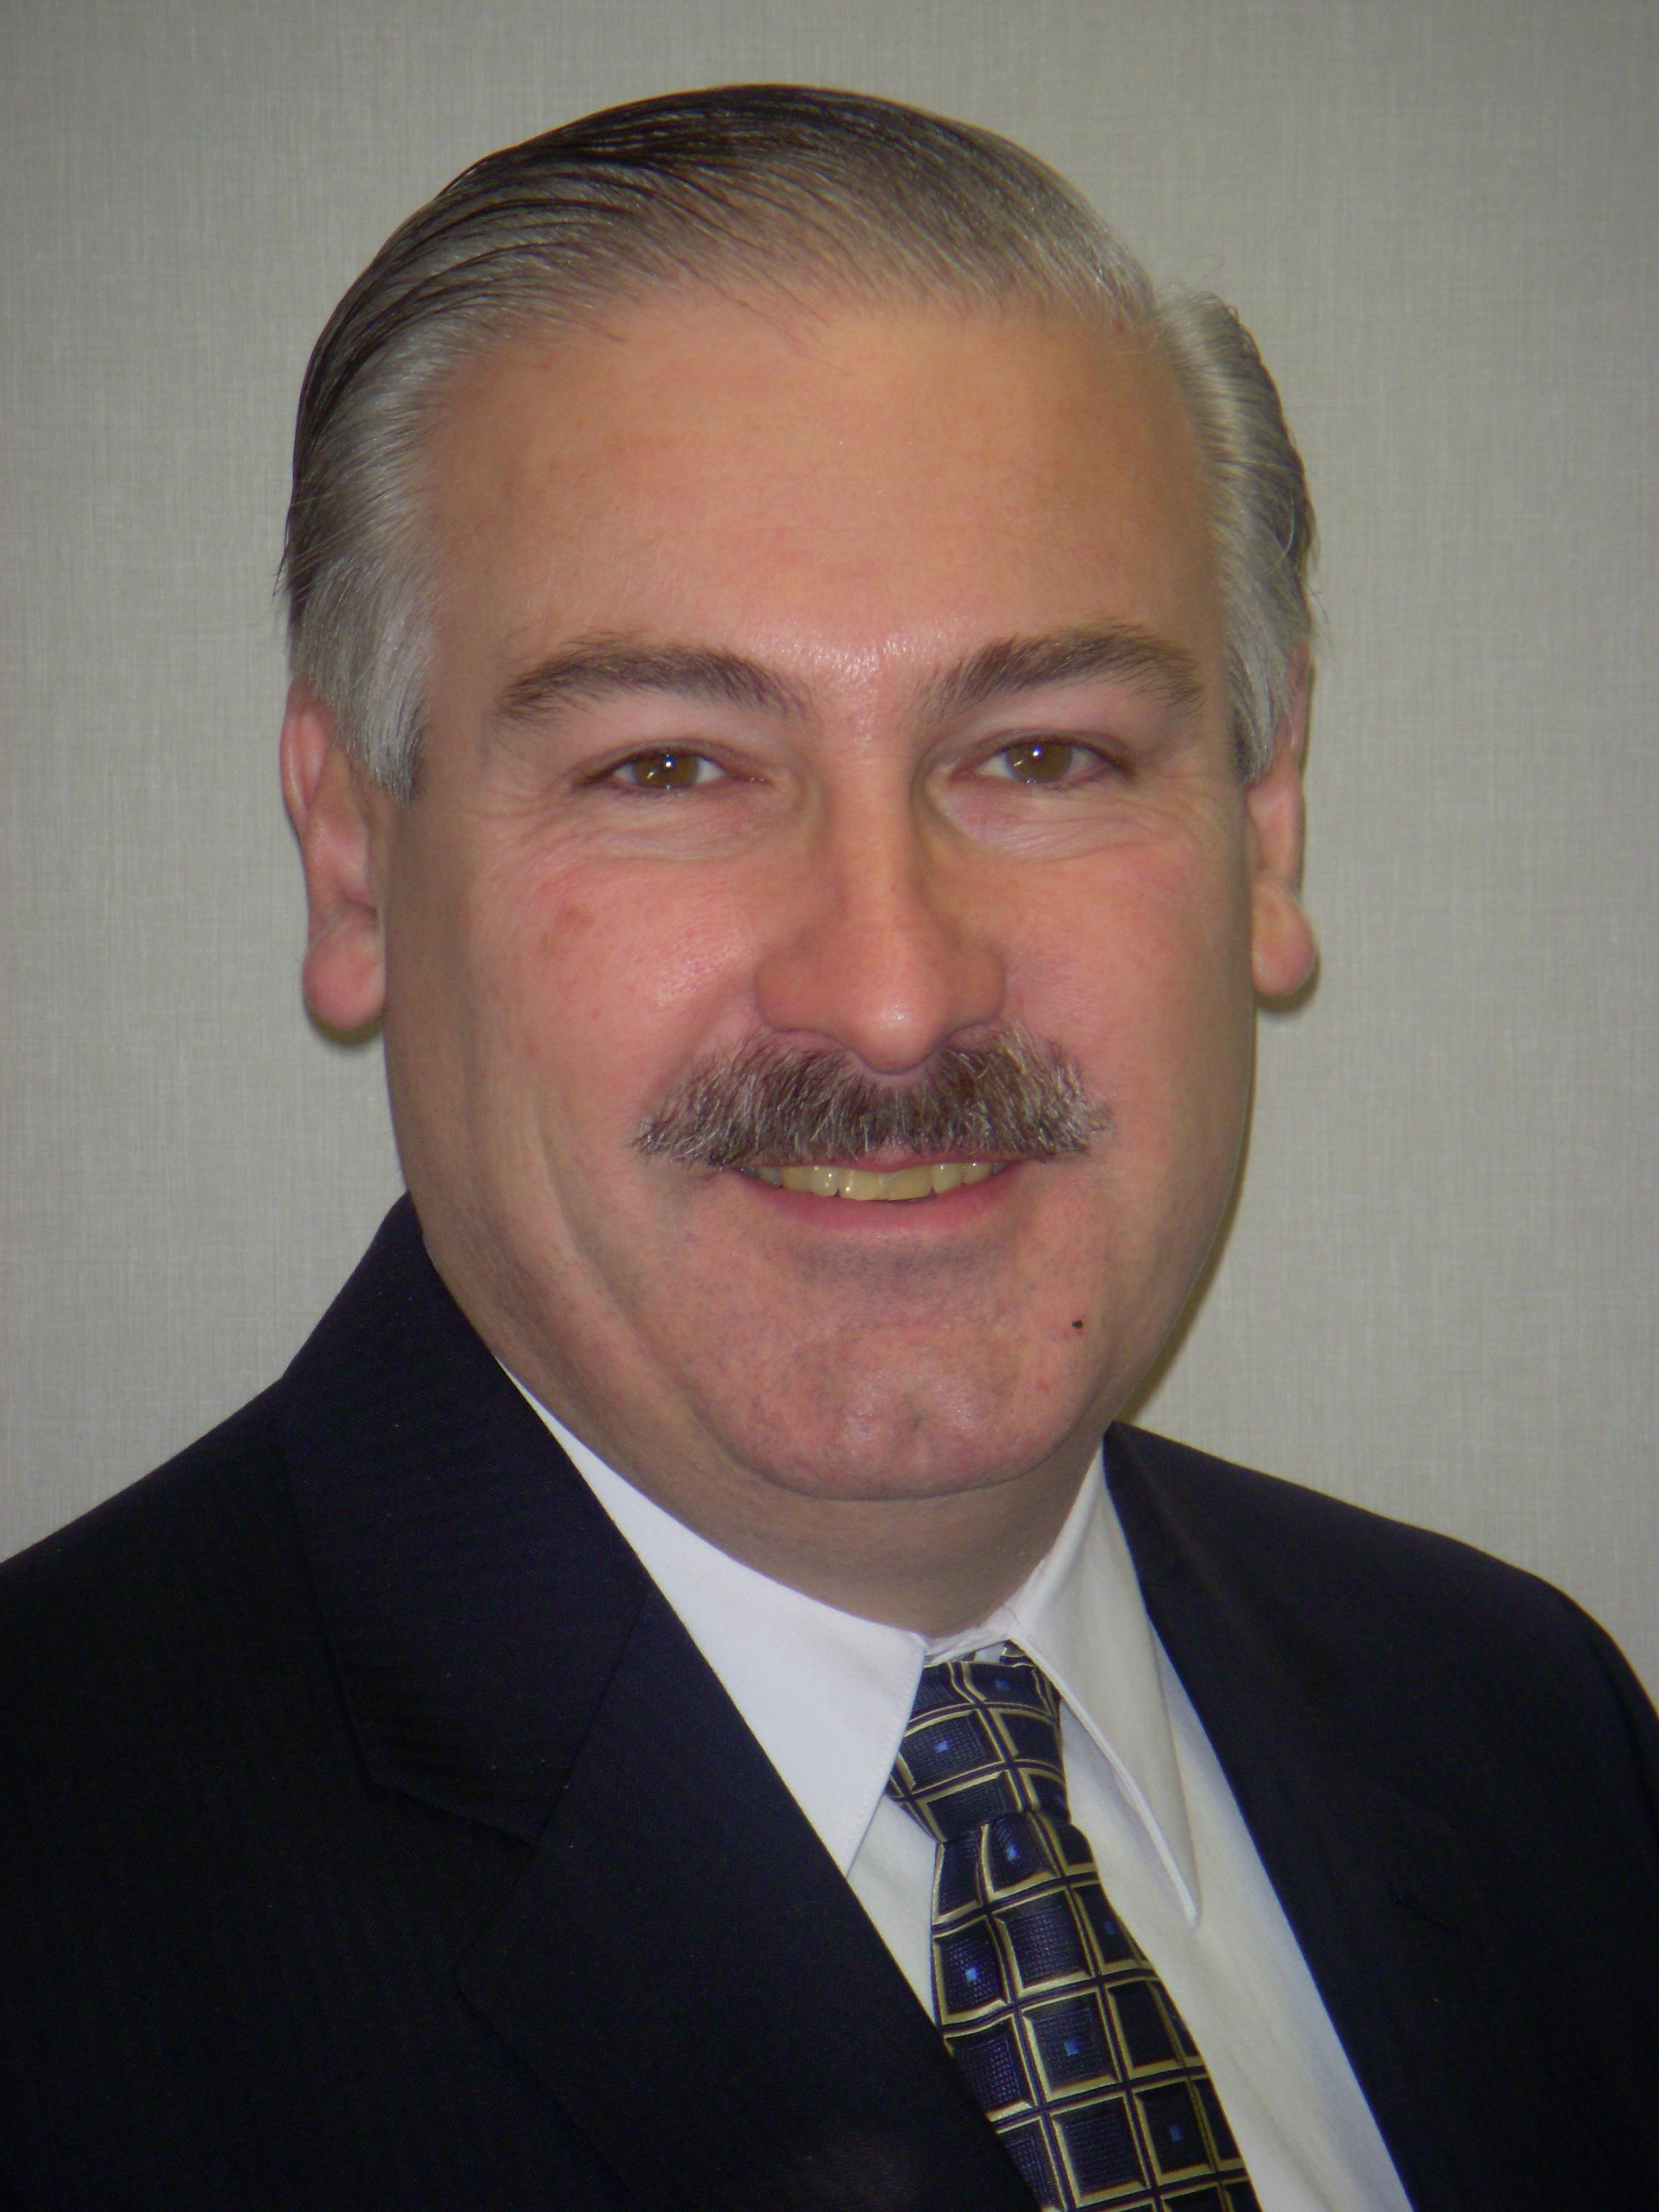 FRANK ROSANO  Your Registered Representative & Insurance Agent